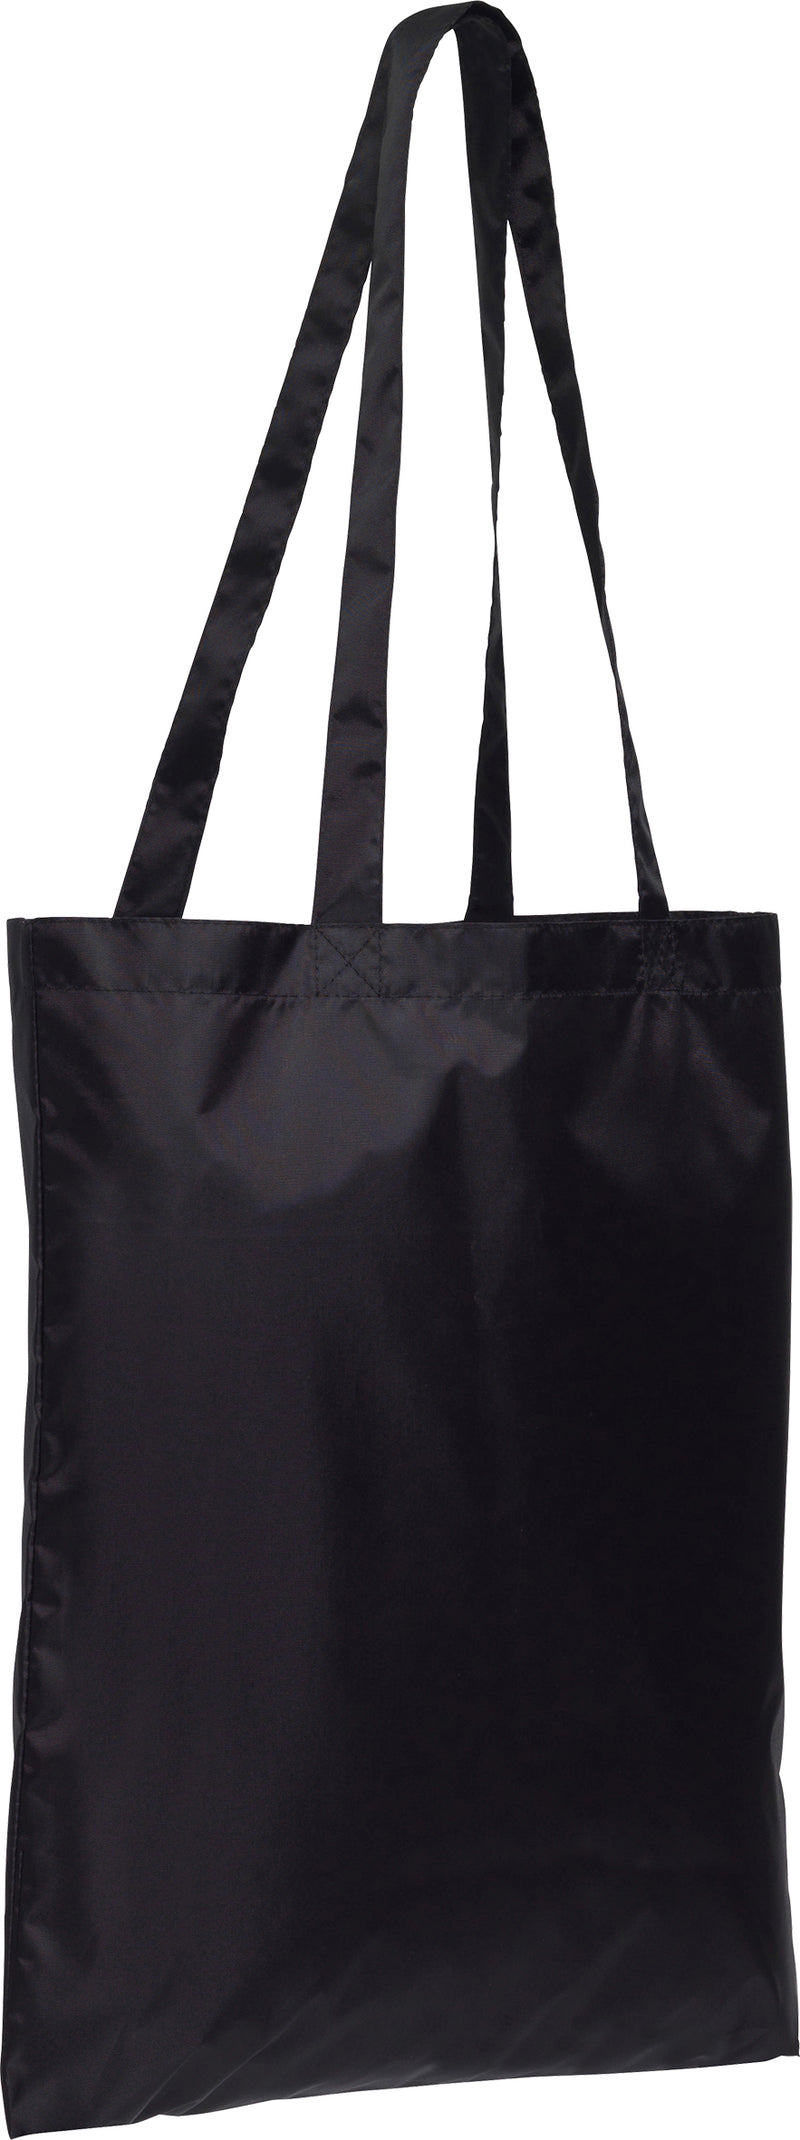 Eynsford' Tote/Shopper Bag